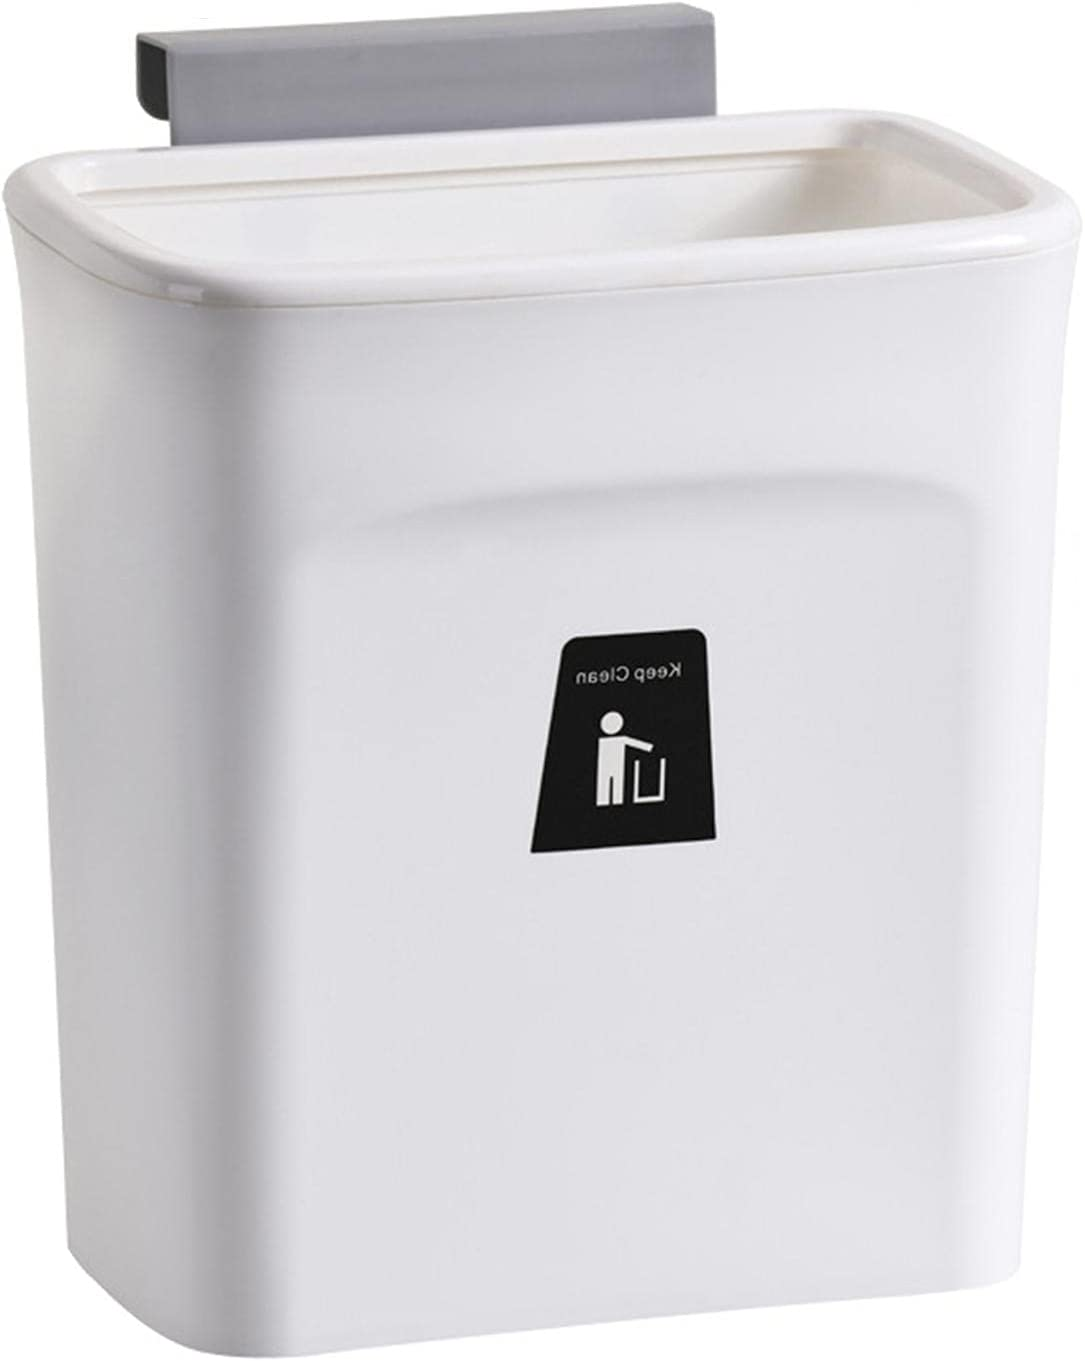 Be super welcome YOOSA Garbage Can Kitchen 2 6.5L Compartments Miami Mall Bathroom Lid with